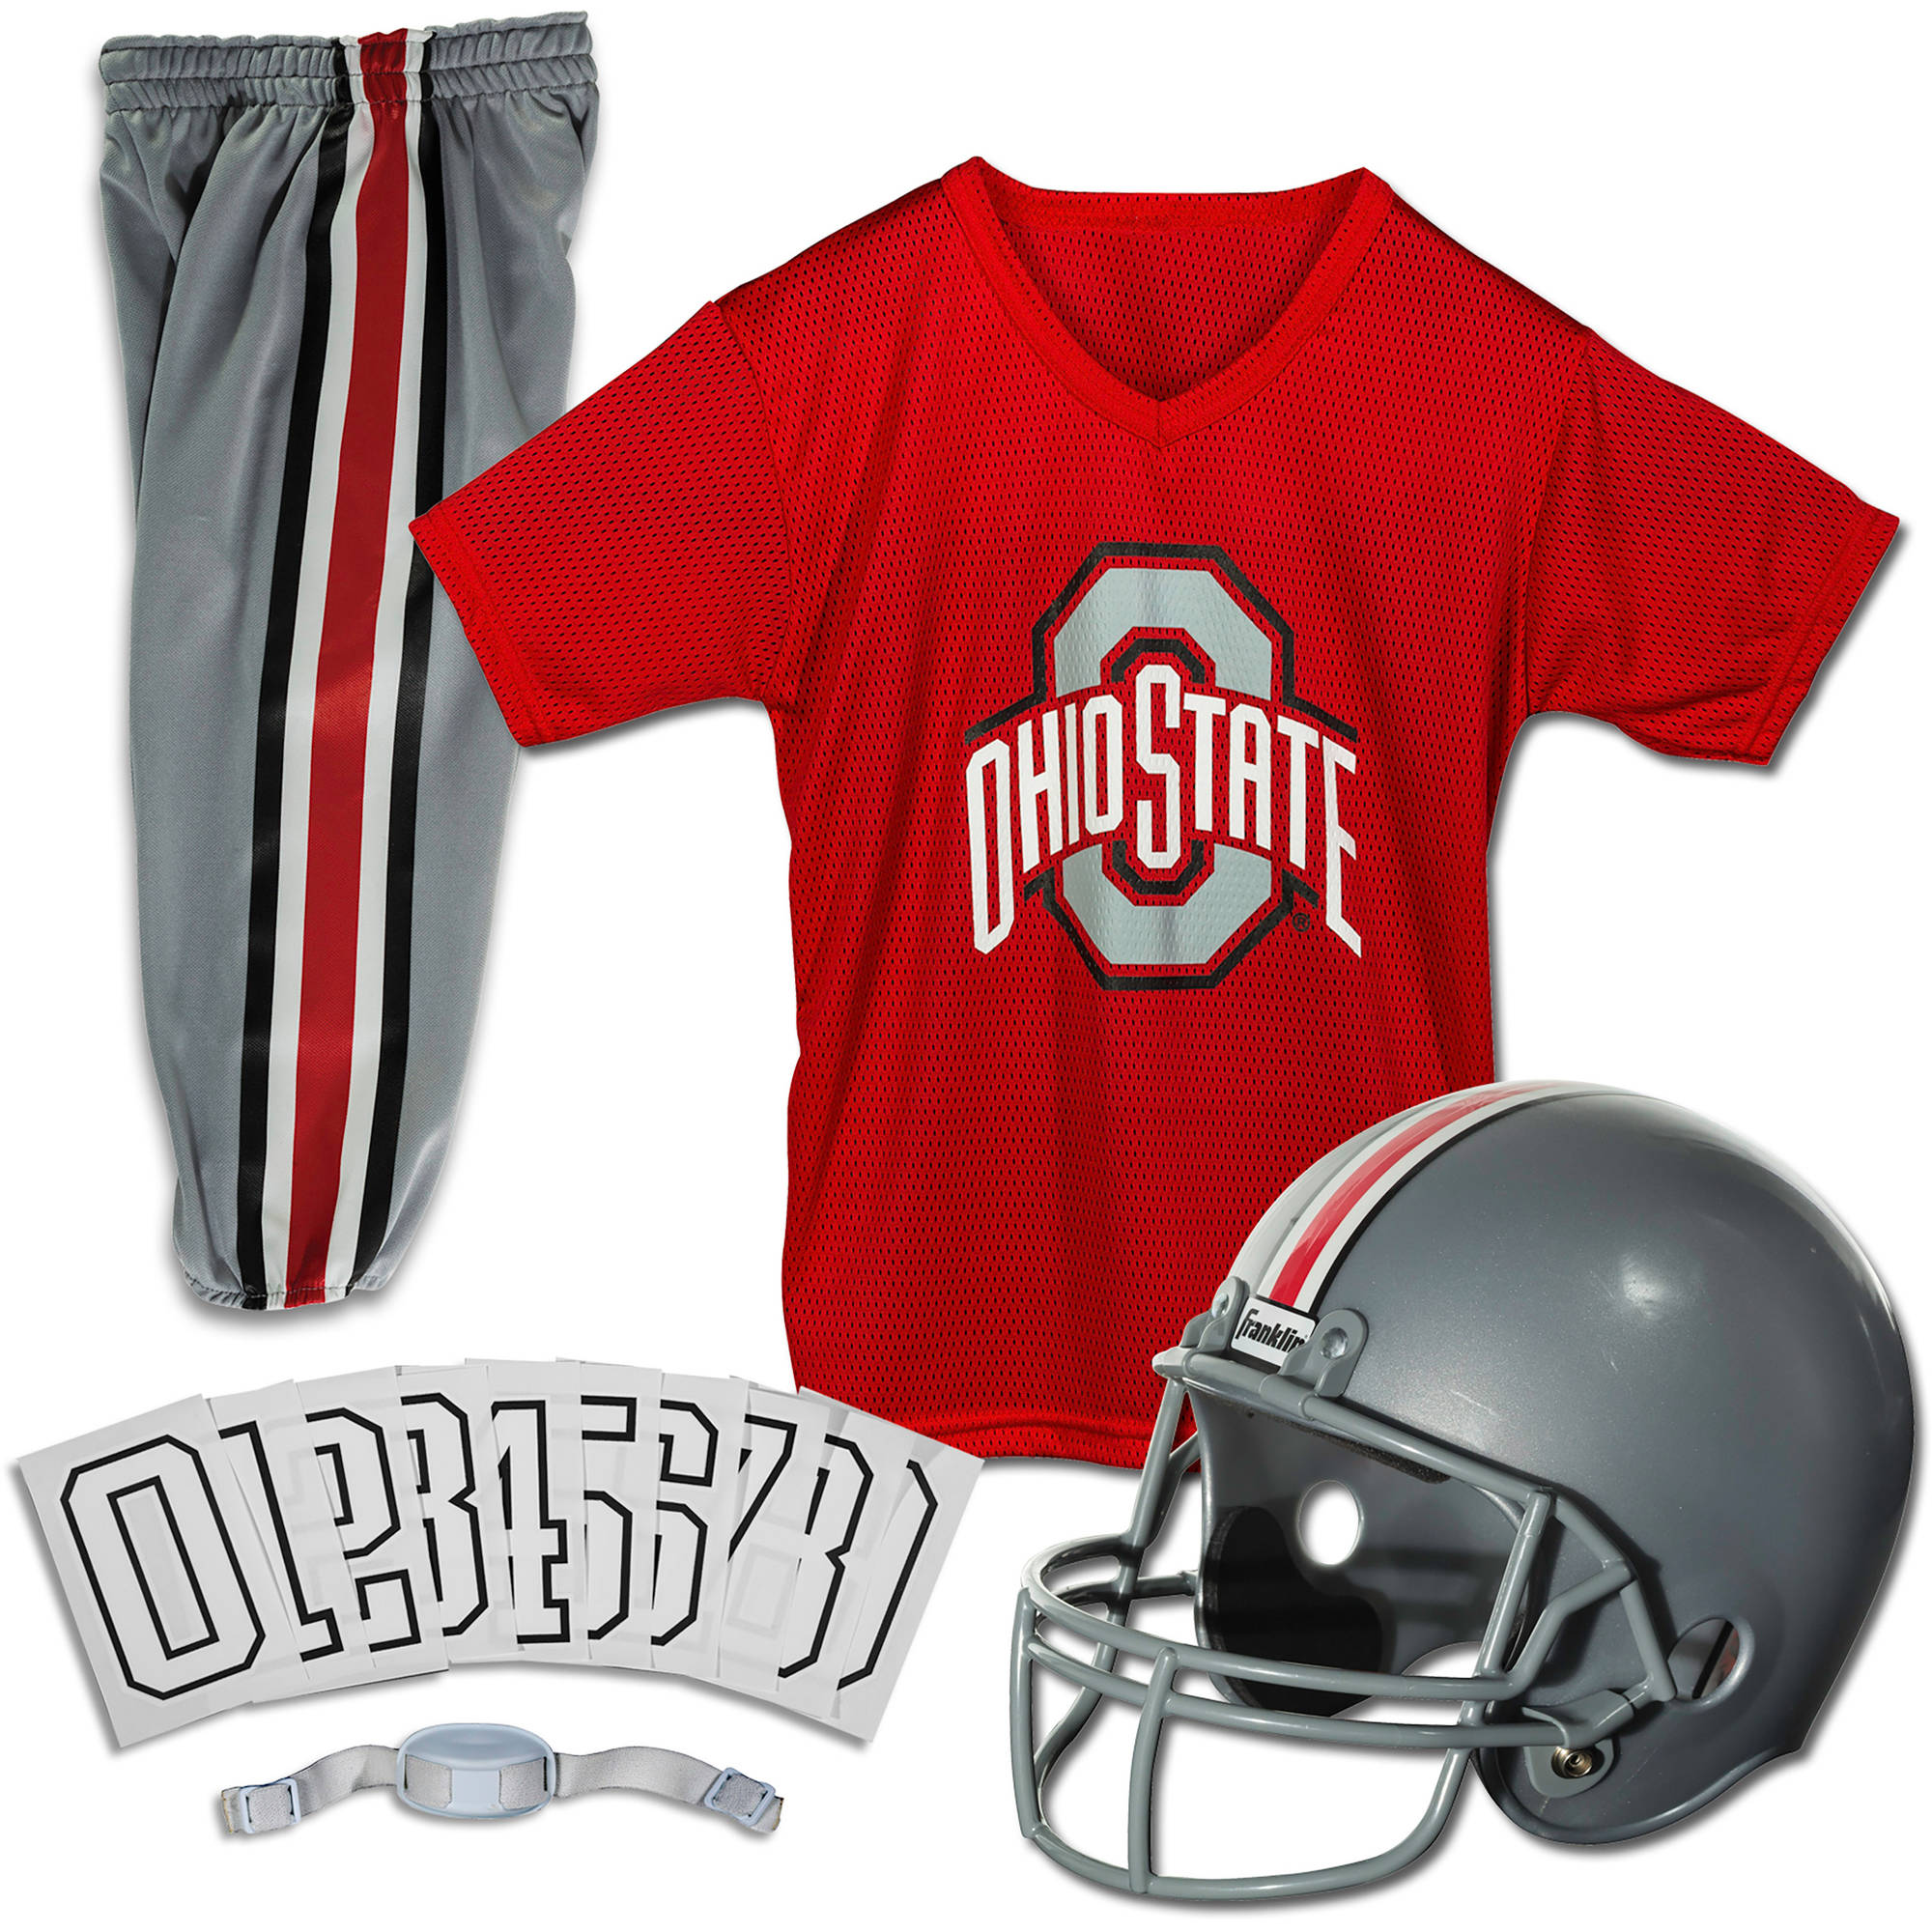 Franklin Sports NCAA Ohio State Buckeyes Uniform Set, Small